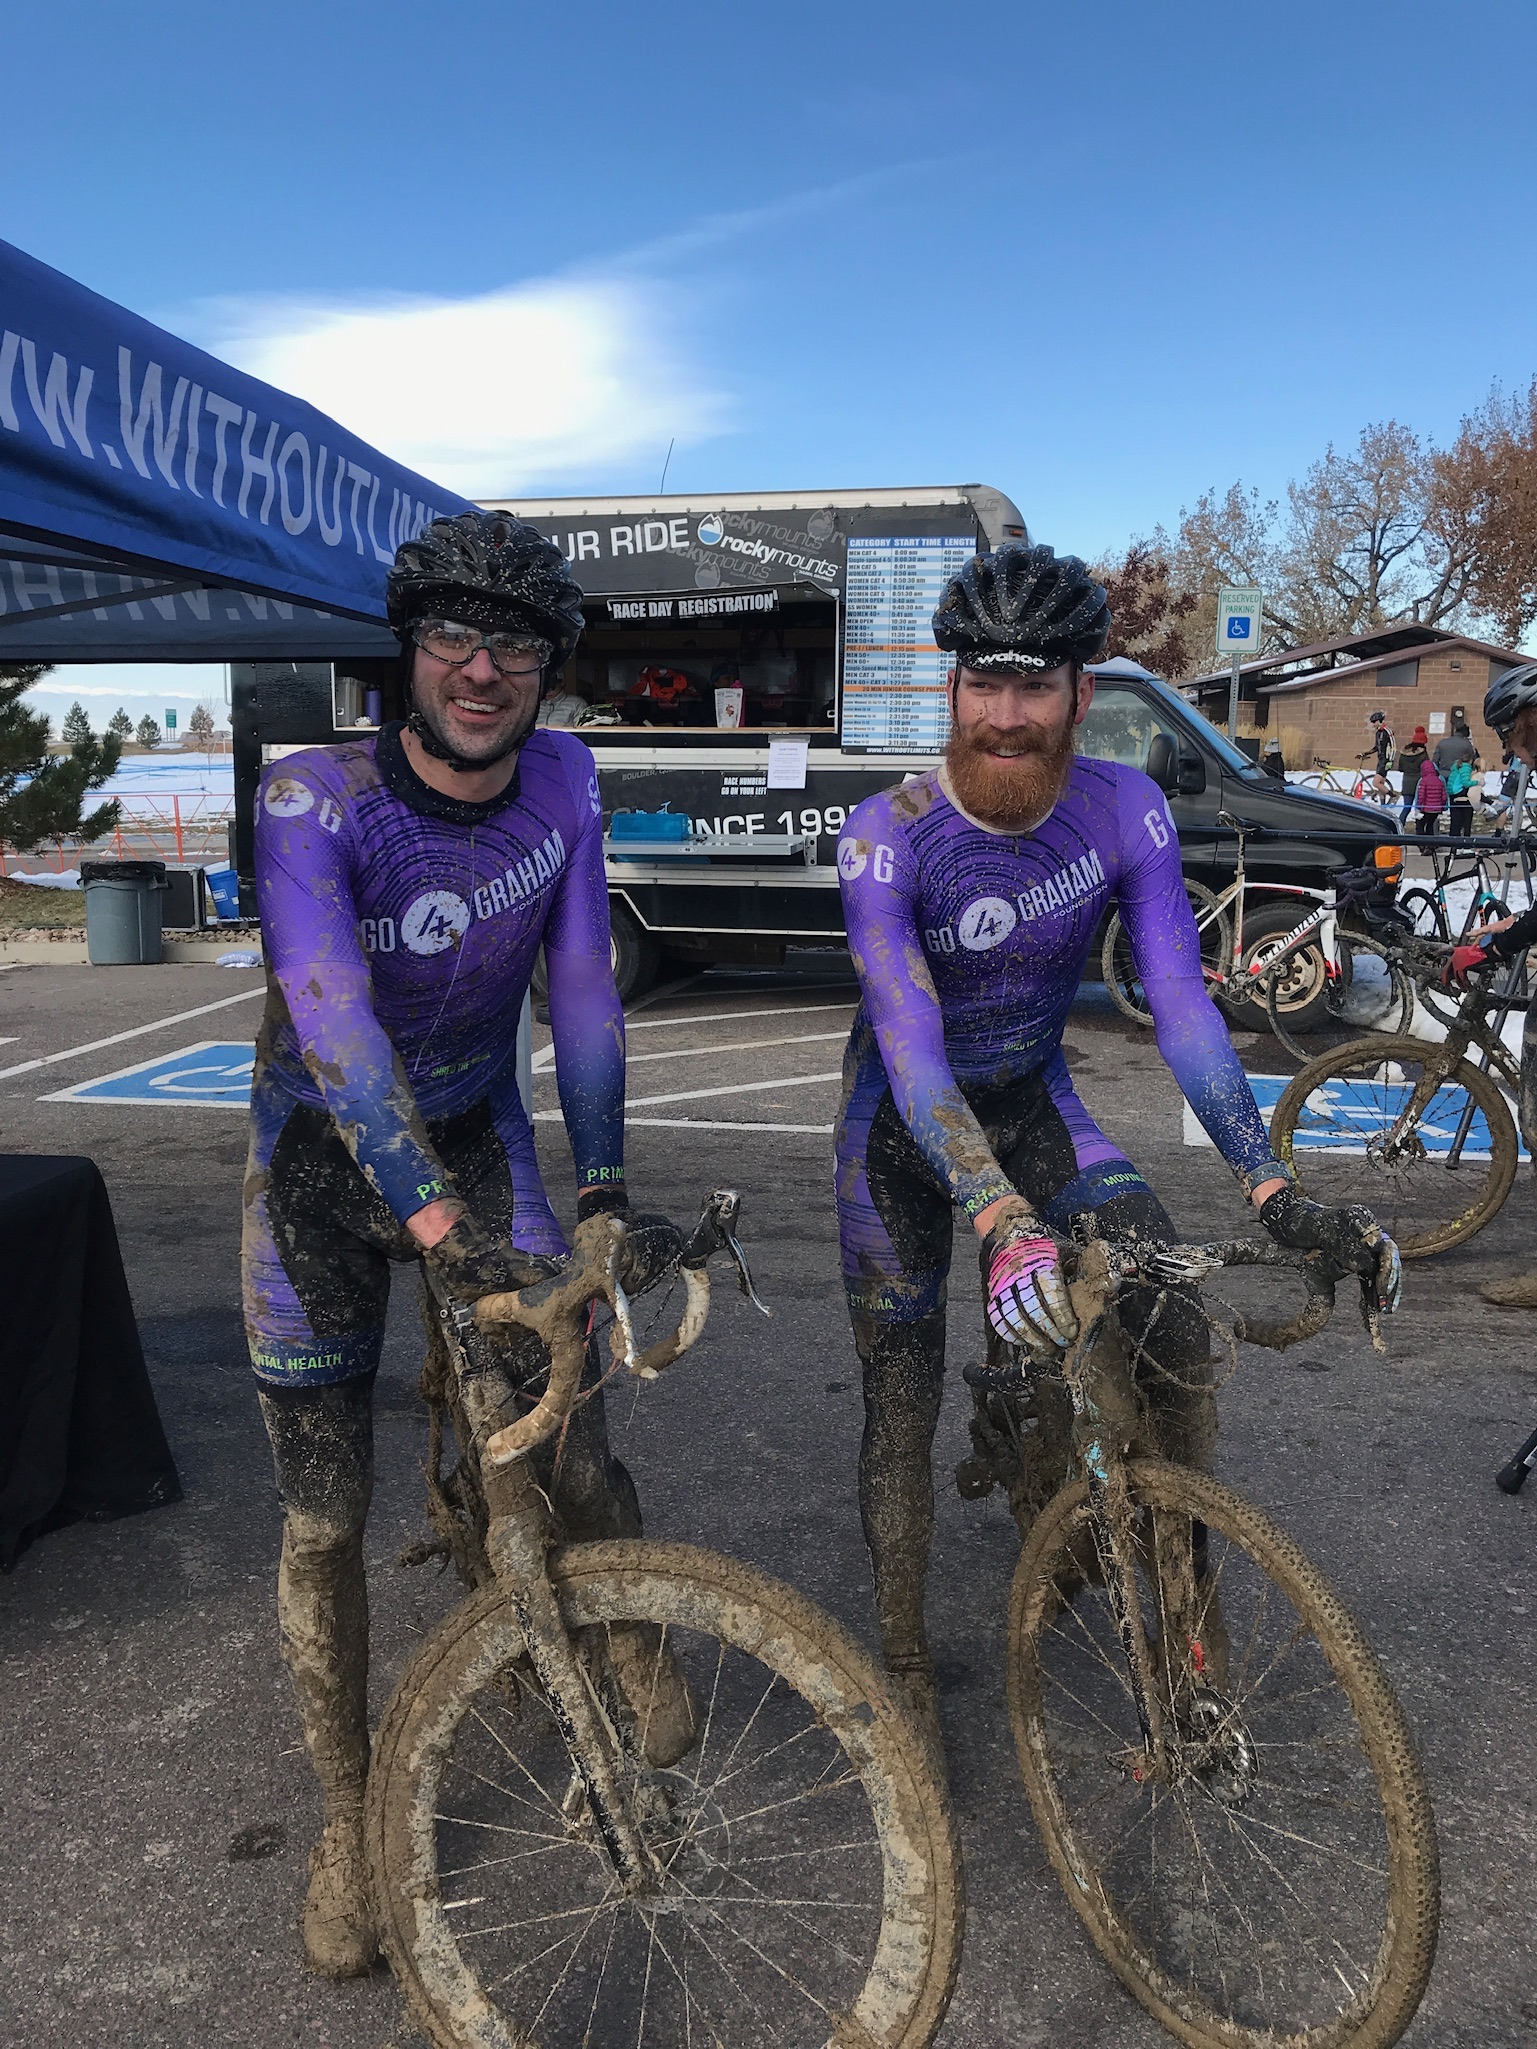 Our team riders playing in the mud